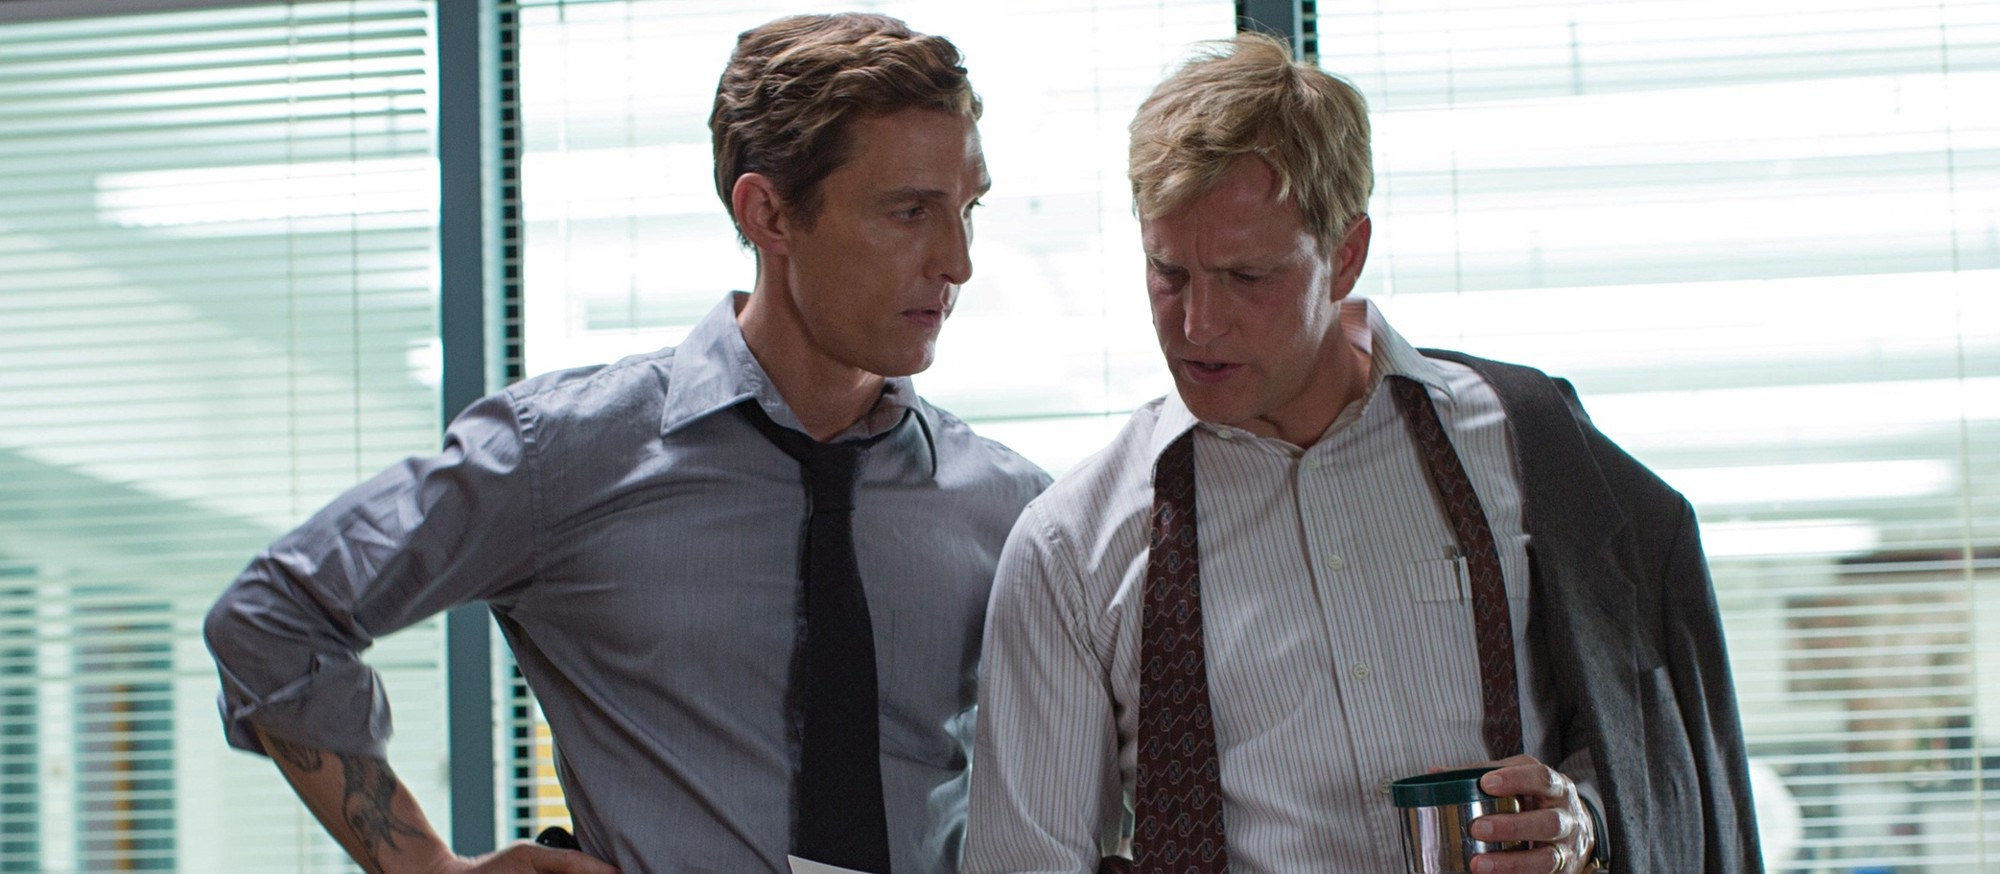 Cohle personality rust Rust cohle